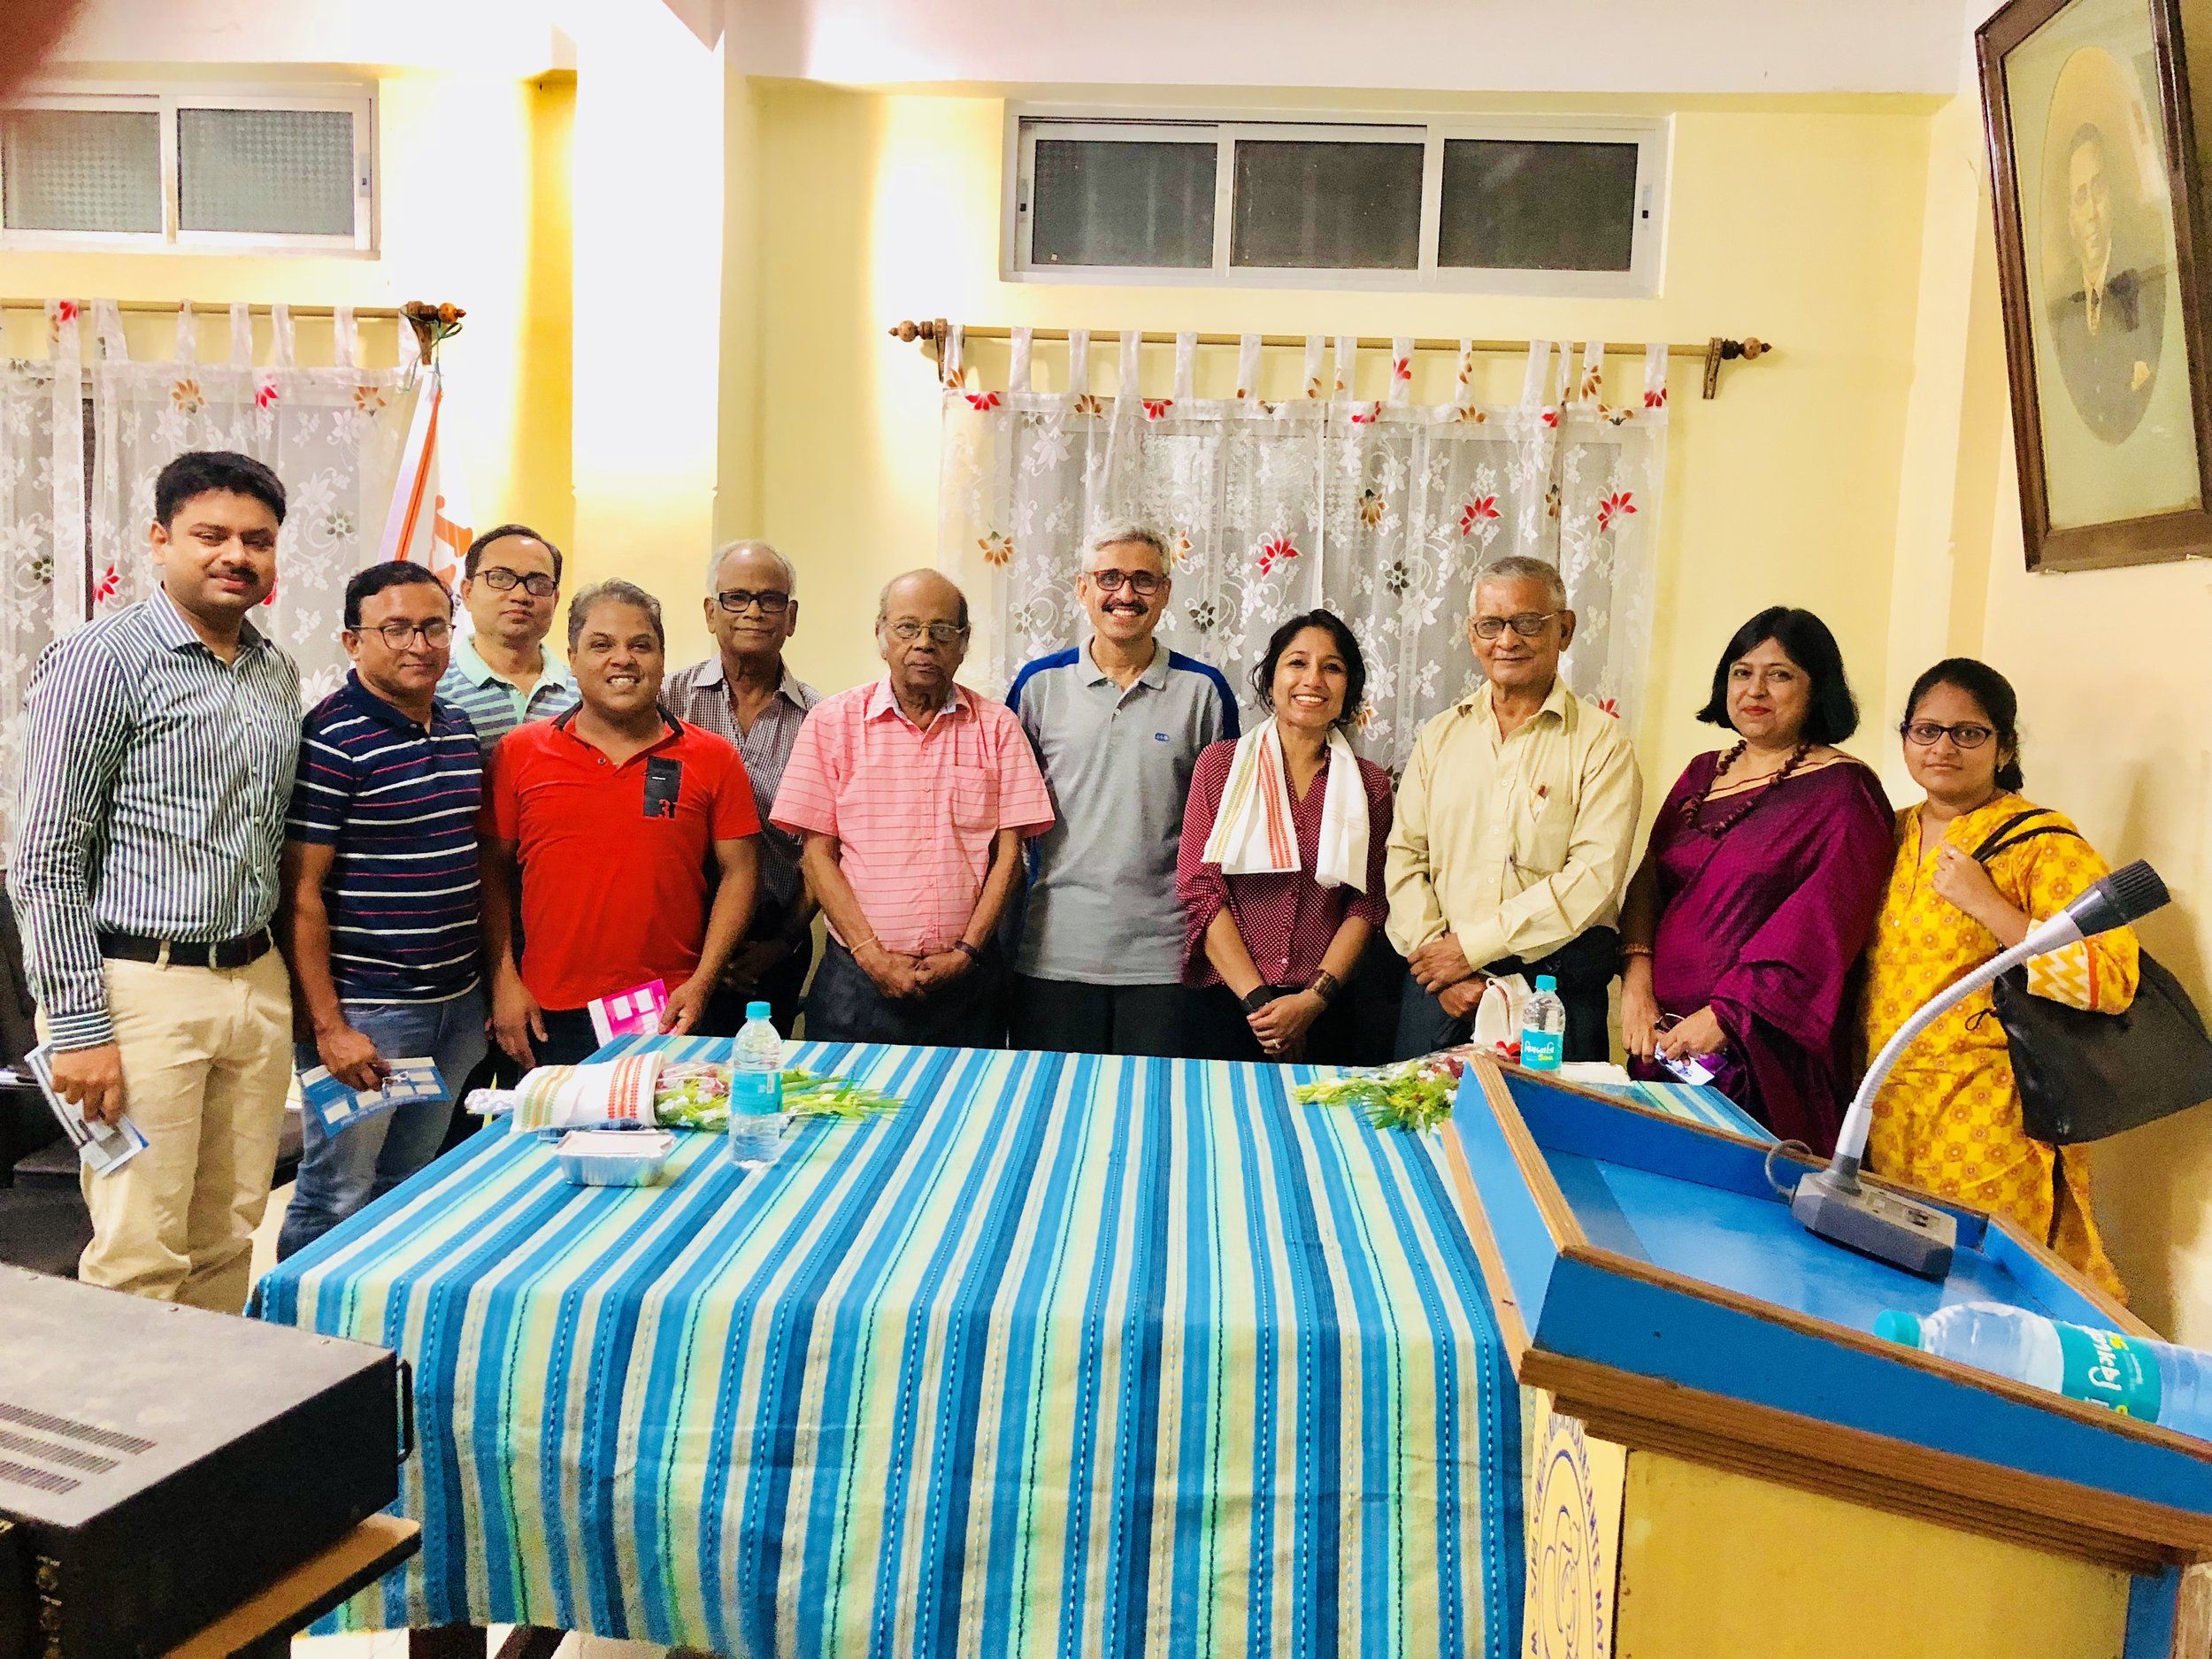 My earnest thanks to Dr. Sarmistha Bhattacharya, Consultant, Obstetrician and Gynecologist, for believing in the cause and for taking the initiative and organizing the program so meticulously, inviting both the nurses and doctors.  My sincere thanks to all the respected doctors who have supported my viewpoints on the low survival frequency of Breast cancer and have come forward to work together to resolve this very grim and critical issue